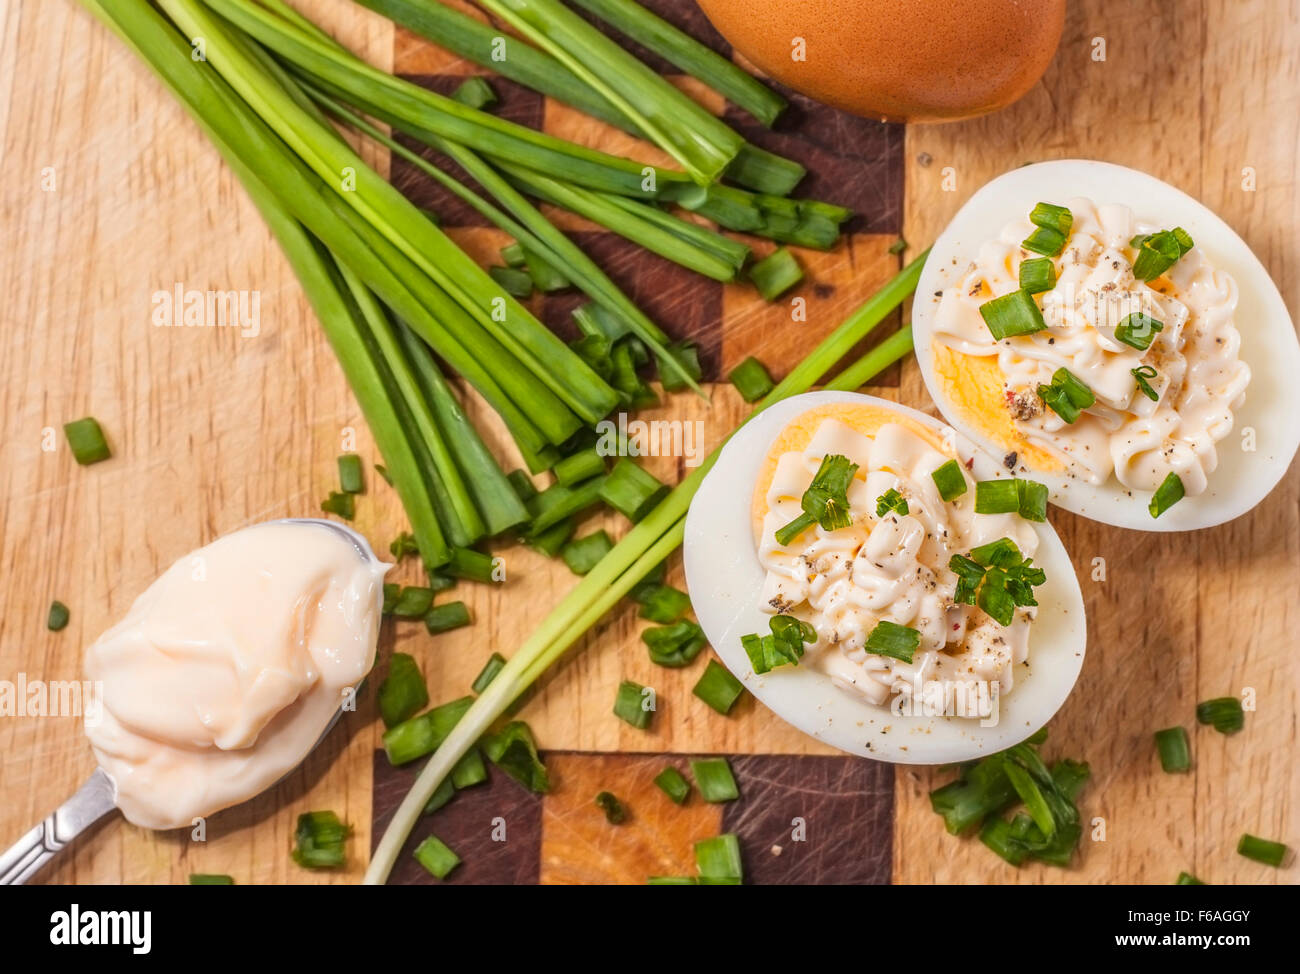 Two halves of boiled eggs with mayonnaise and sliced chive prepared on cutting - Stock Image